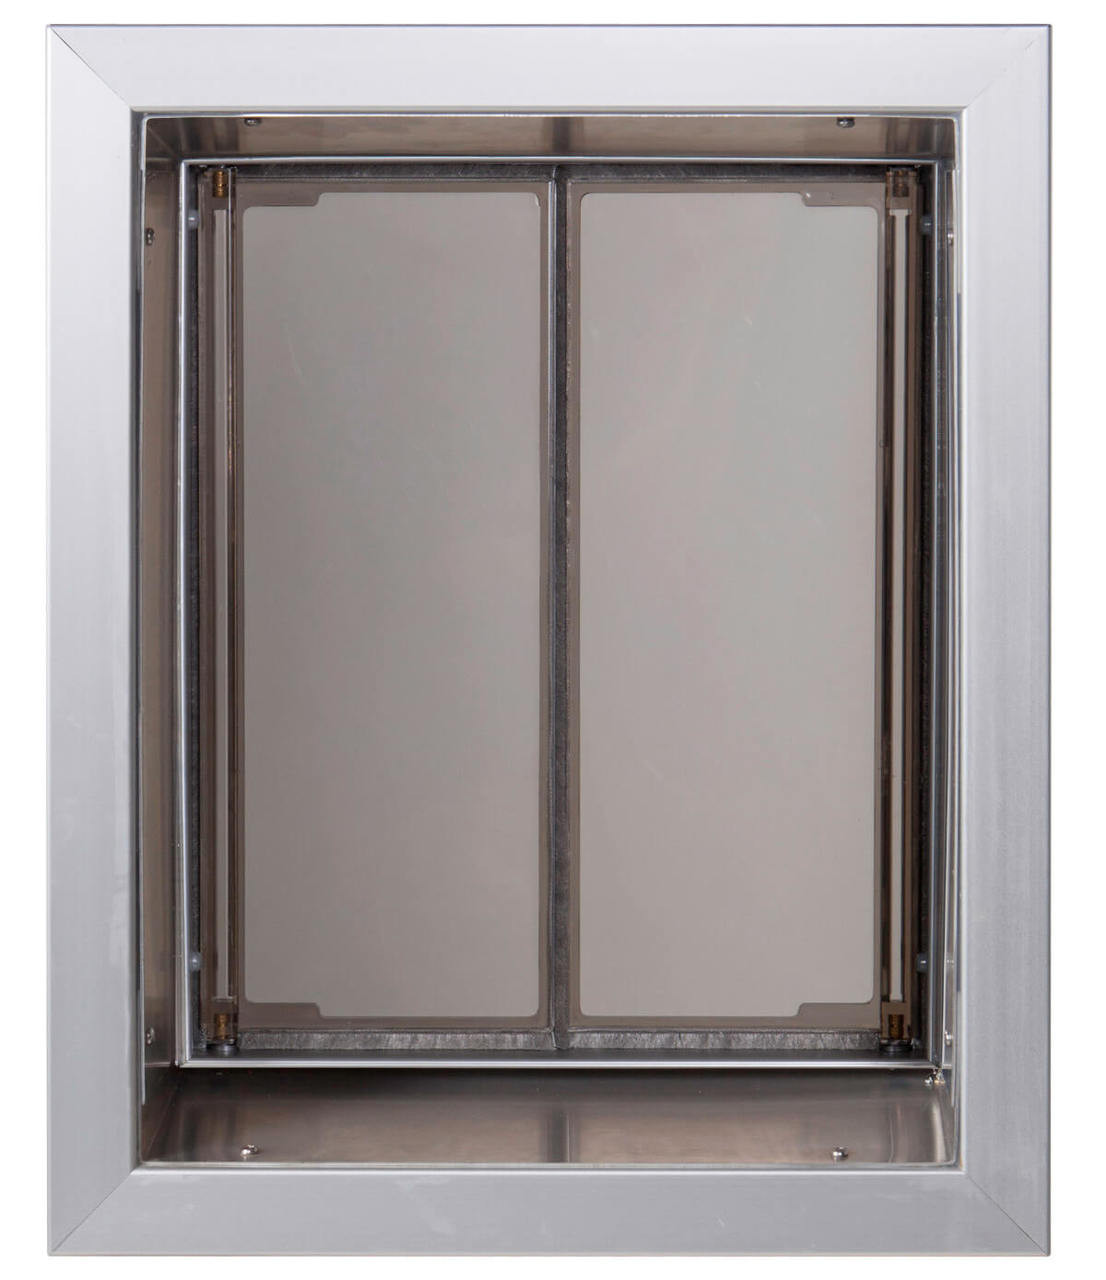 Bon PlexiDor Wall Doggy Doors Are Weather Tight And Fit Walls Up To 12 Inches  Deep